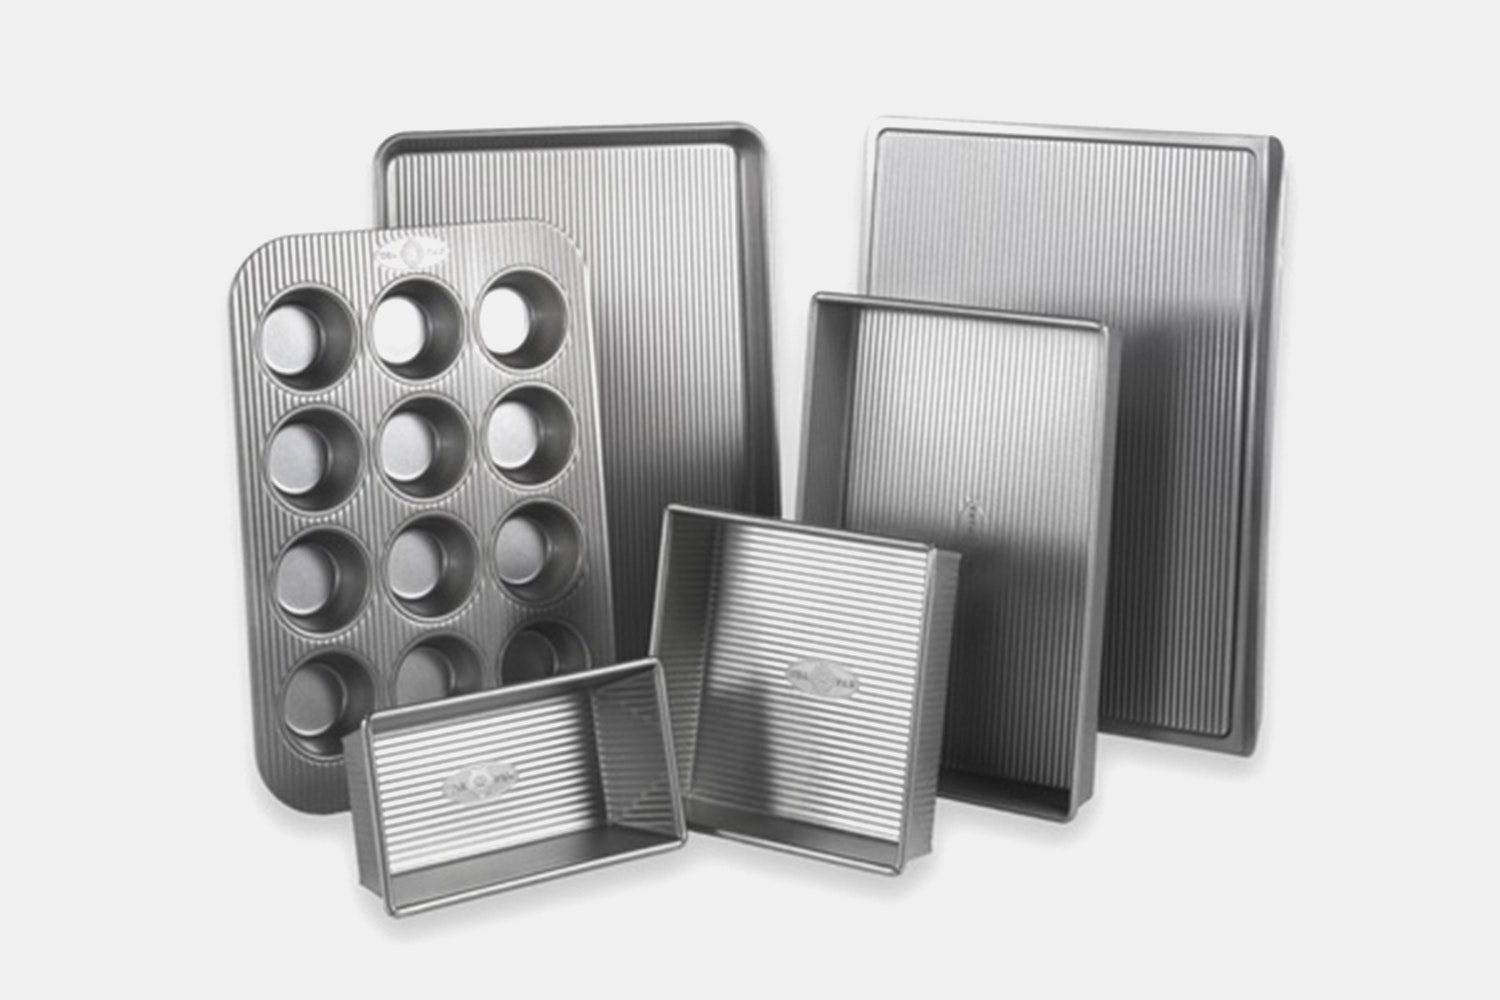 6-Piece Bakeware Set (+$25)